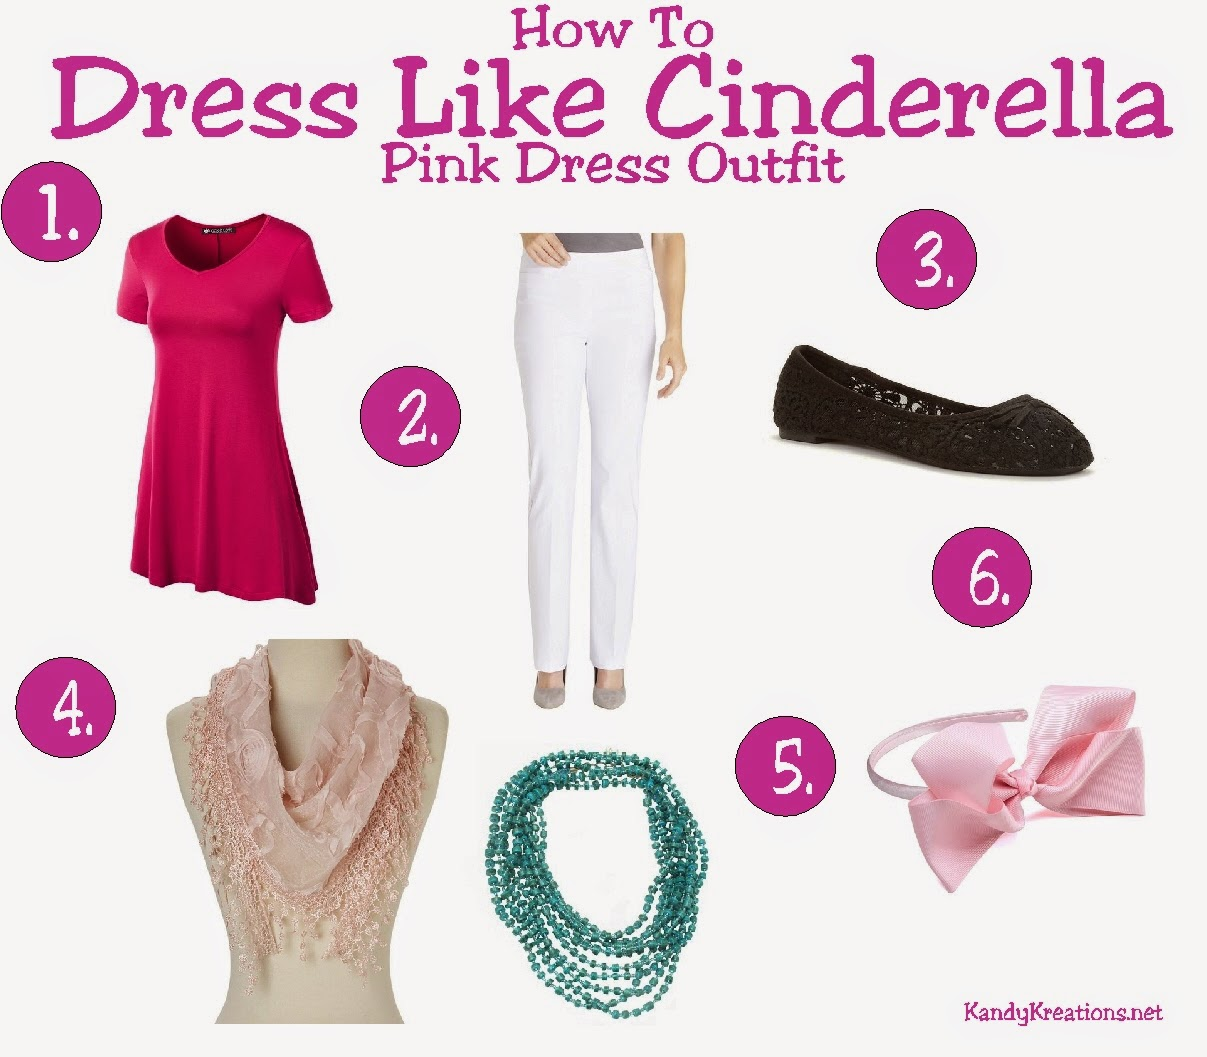 How to dress like Cinderella in her Pink Dress by KandyKreations